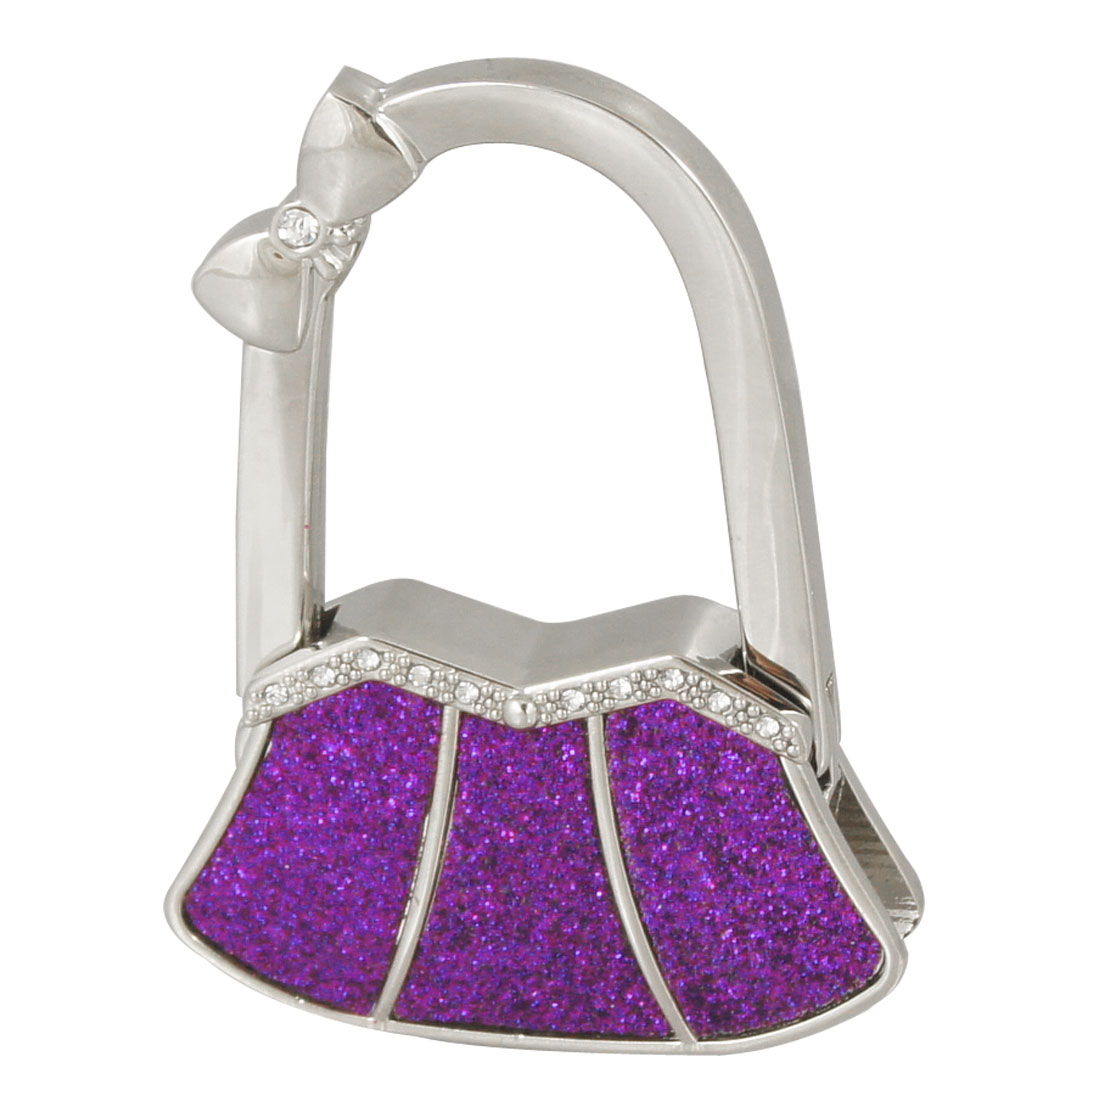 Bowknot Decor Glitter Purple Bag Shaped Foldable Handbag Hanger Hook